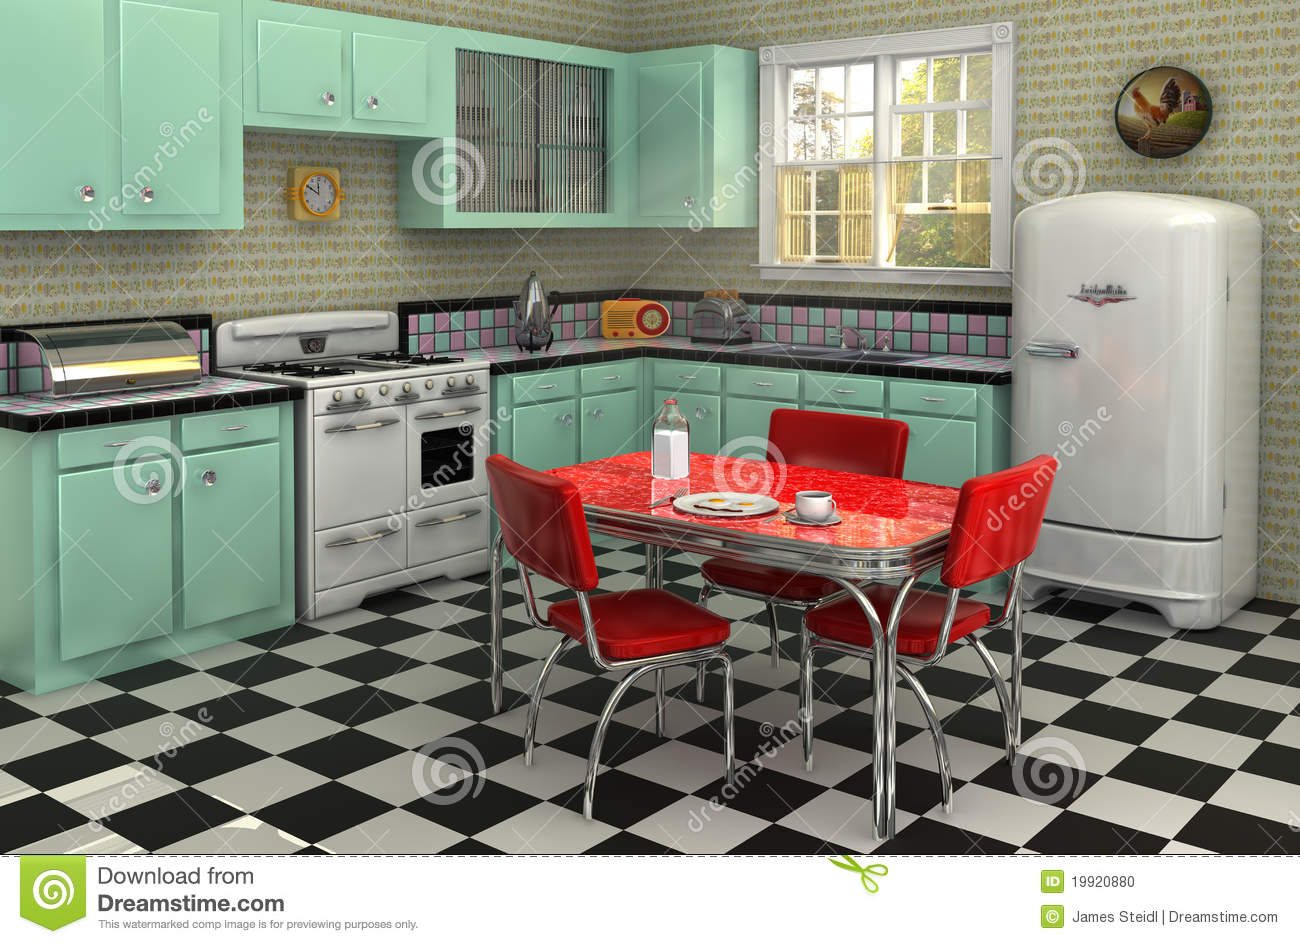 Art Deco Kitchen Appliances